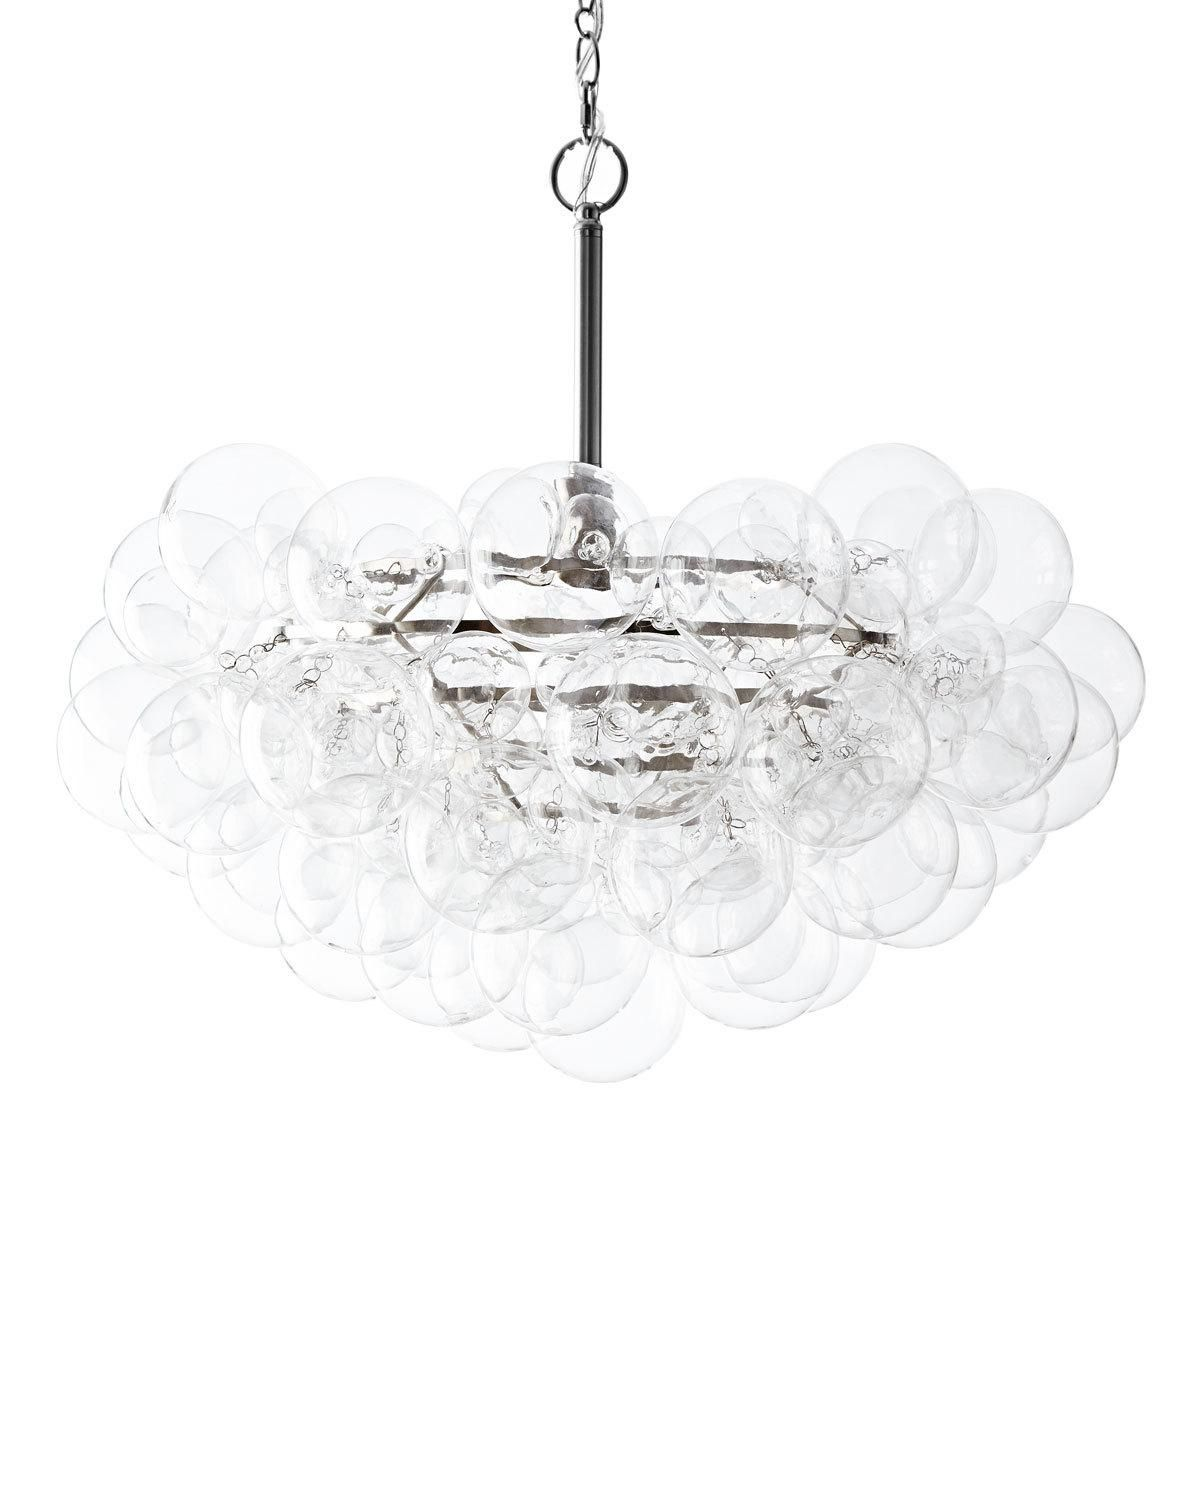 Regina andrew design bubbles 1 light pendant crystal pendant lighting light pendant chandelier